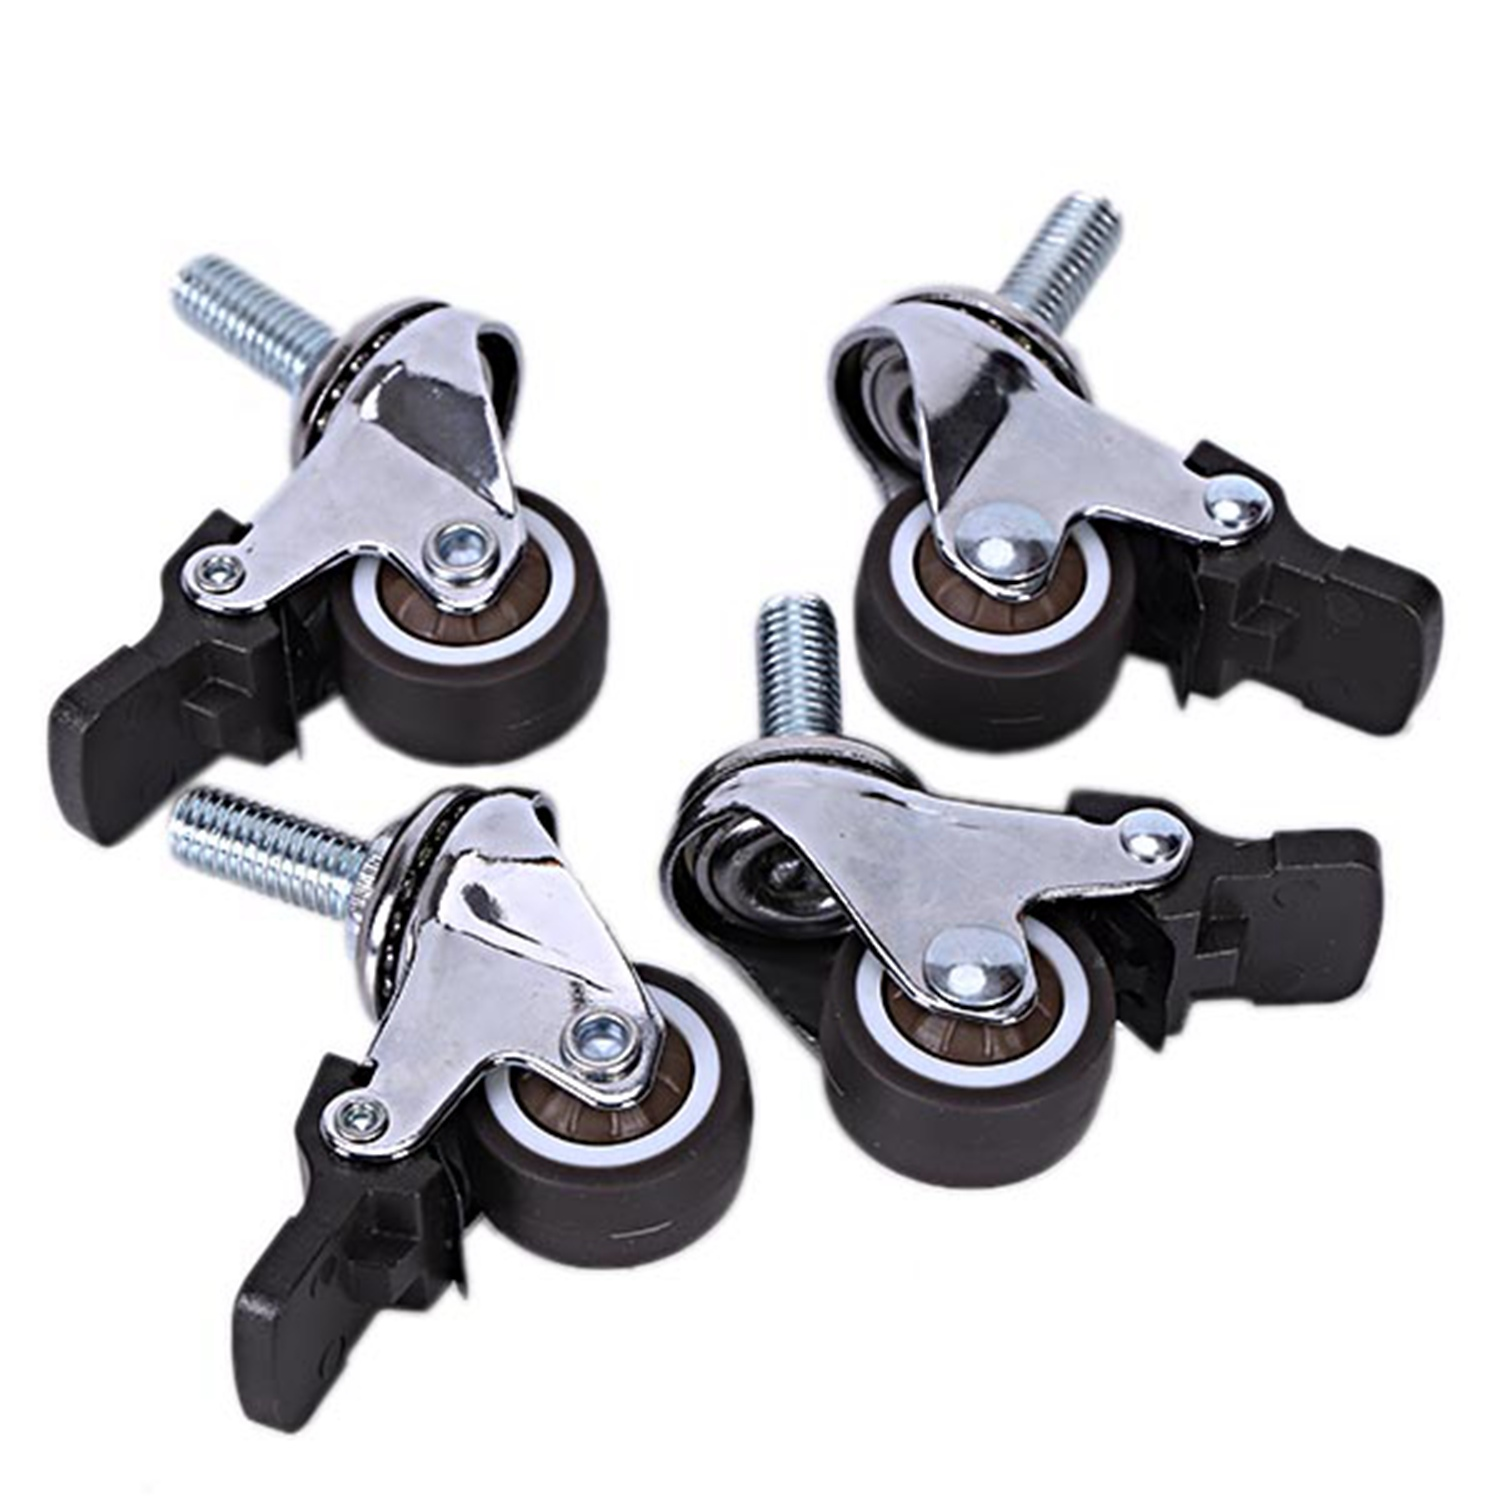 ELEG 4Pcs Mini Small Casters 1 Inch M8X15Mm Tpe Silent Wheels With Brake Universal Casters Wheel For Furniture Bookcase Drawer|Casters| |  - title=